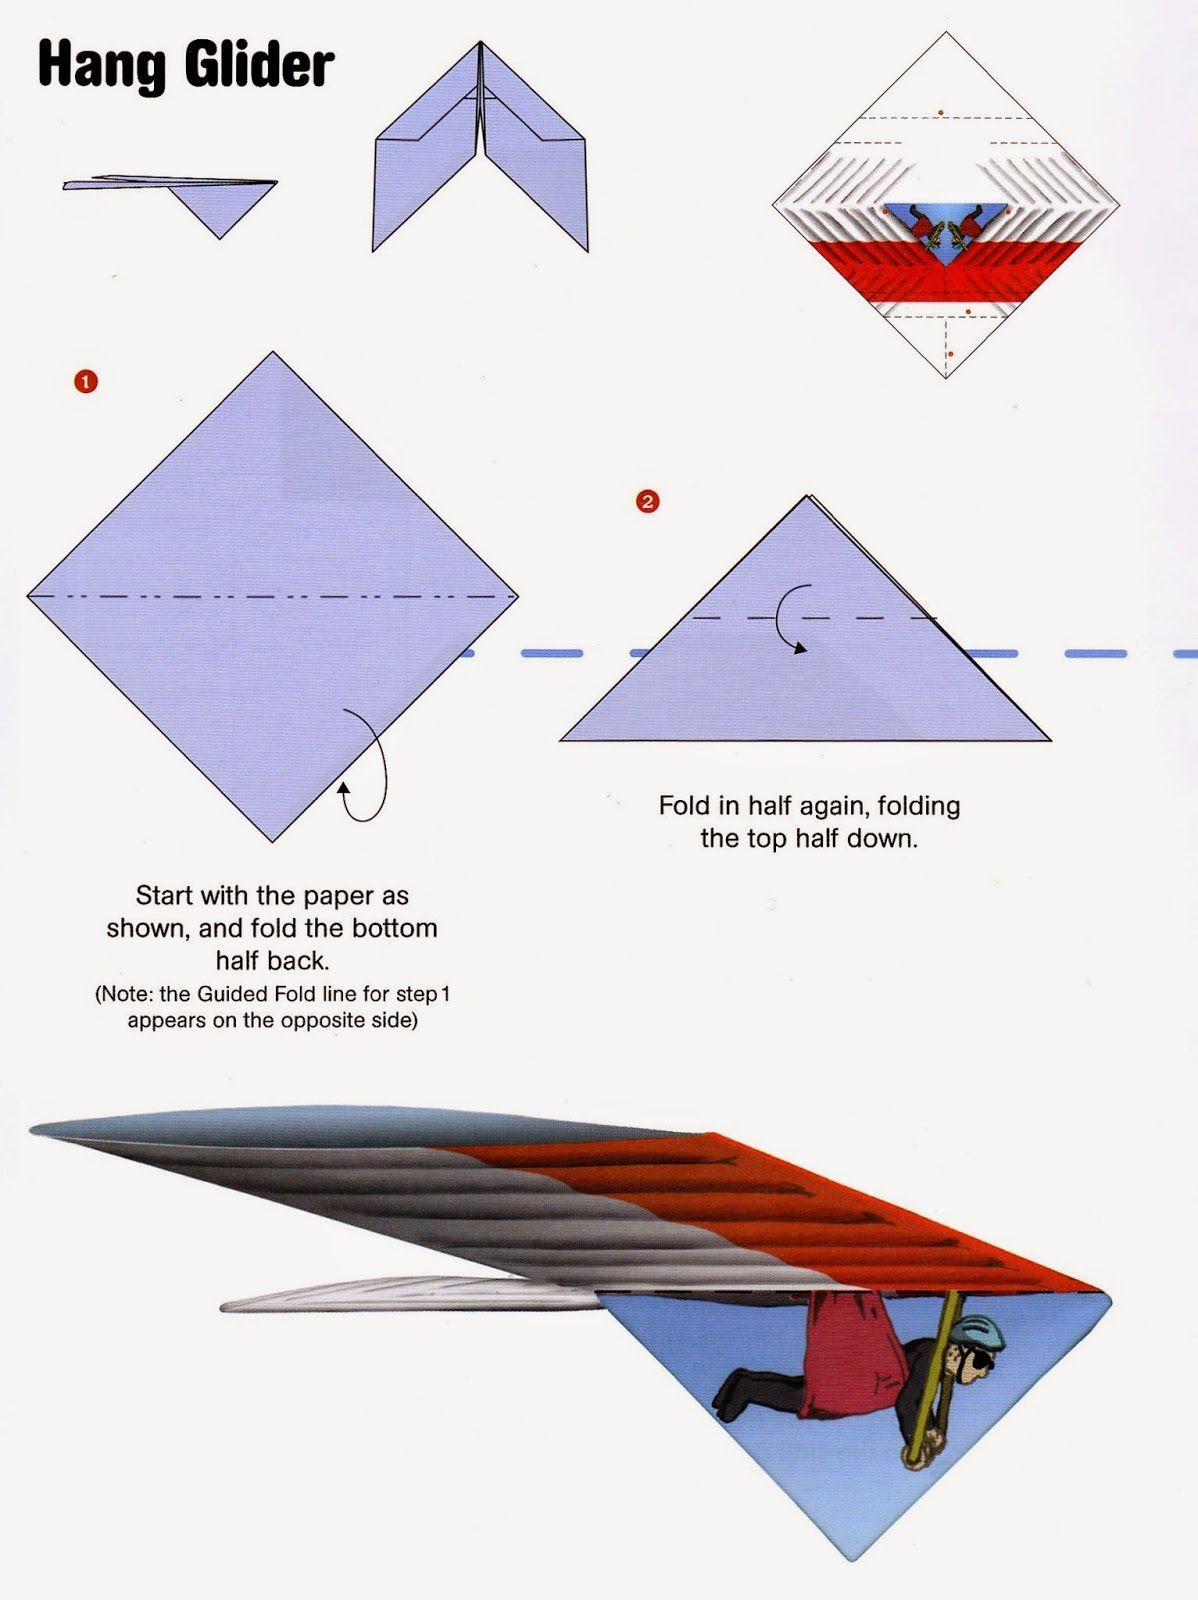 Craftside: How to Fold a Hang Glider Paper Airplane from the